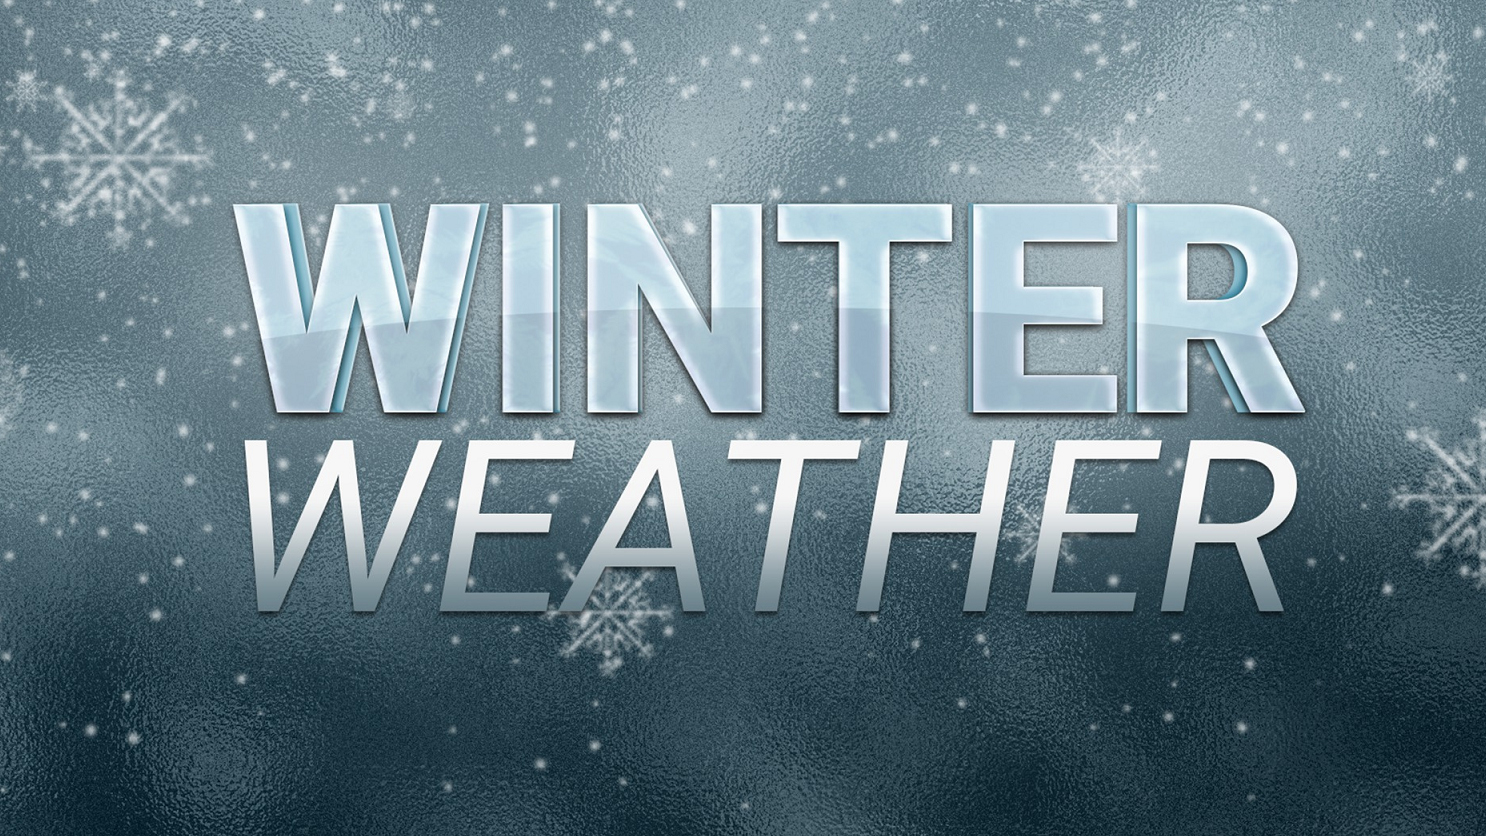 NWS issues Winter Storm Watch ahead of lake effect snow